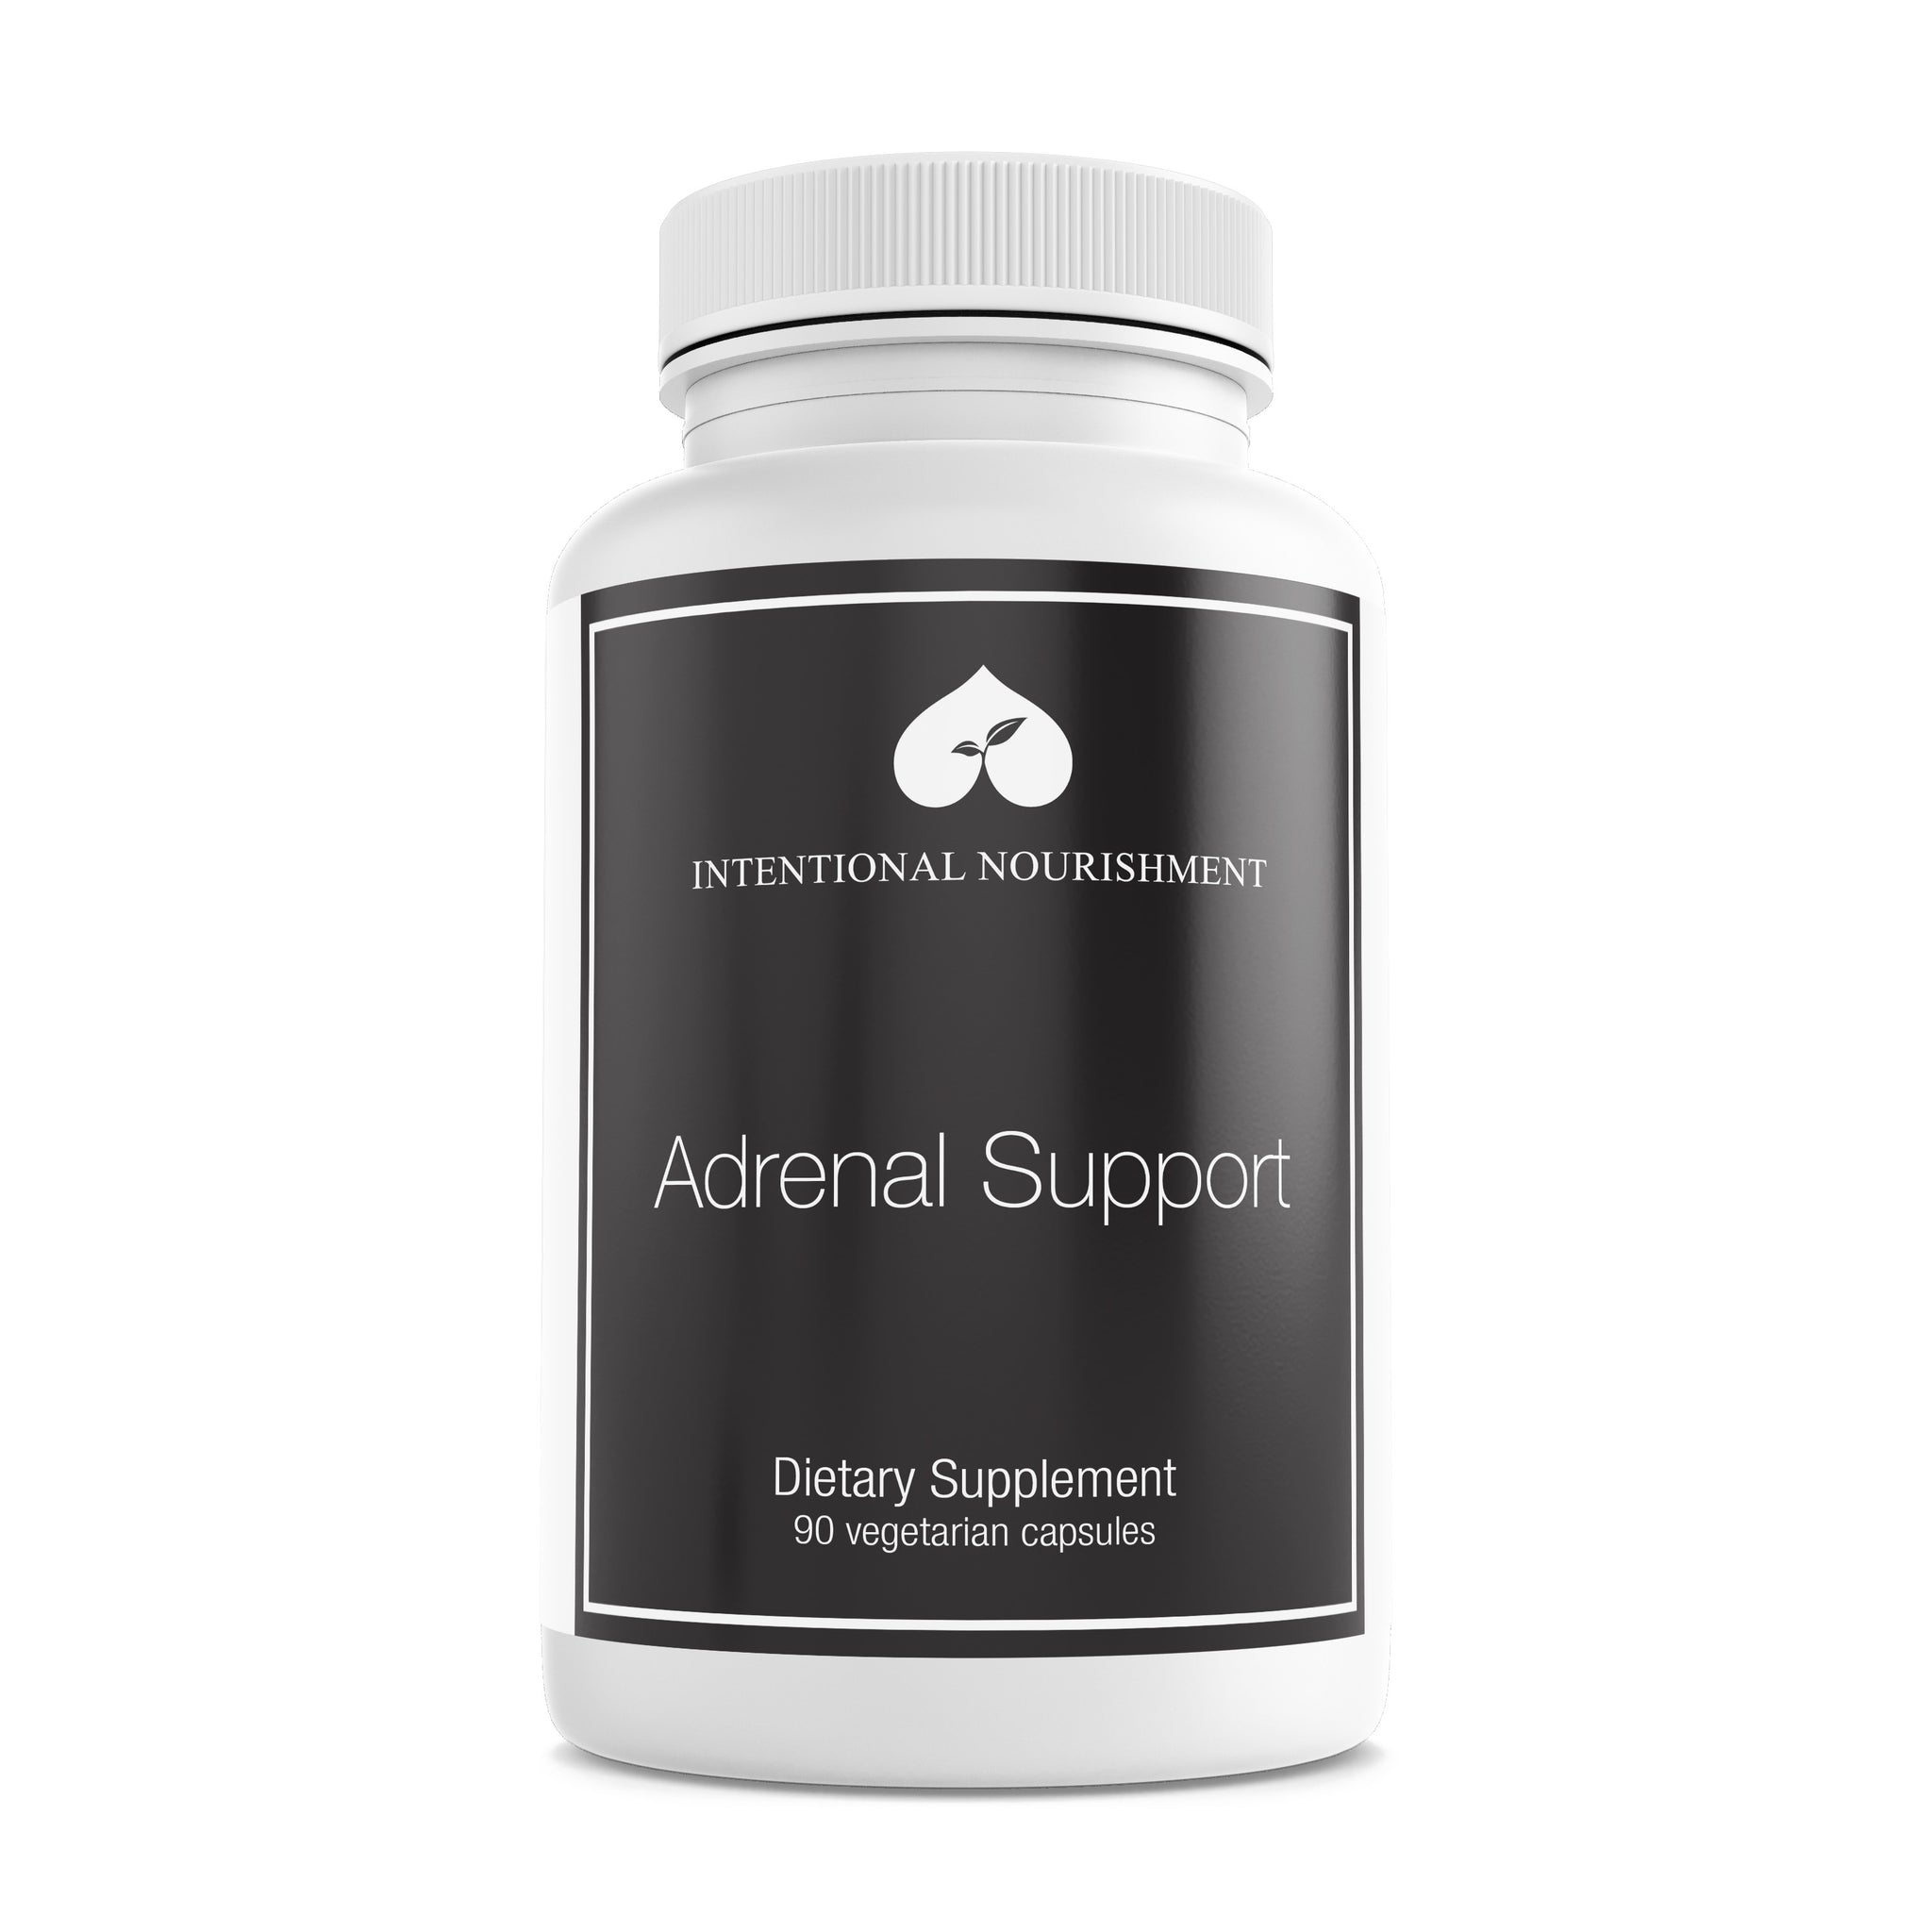 LEANLOVE Adrenal Support Supplement